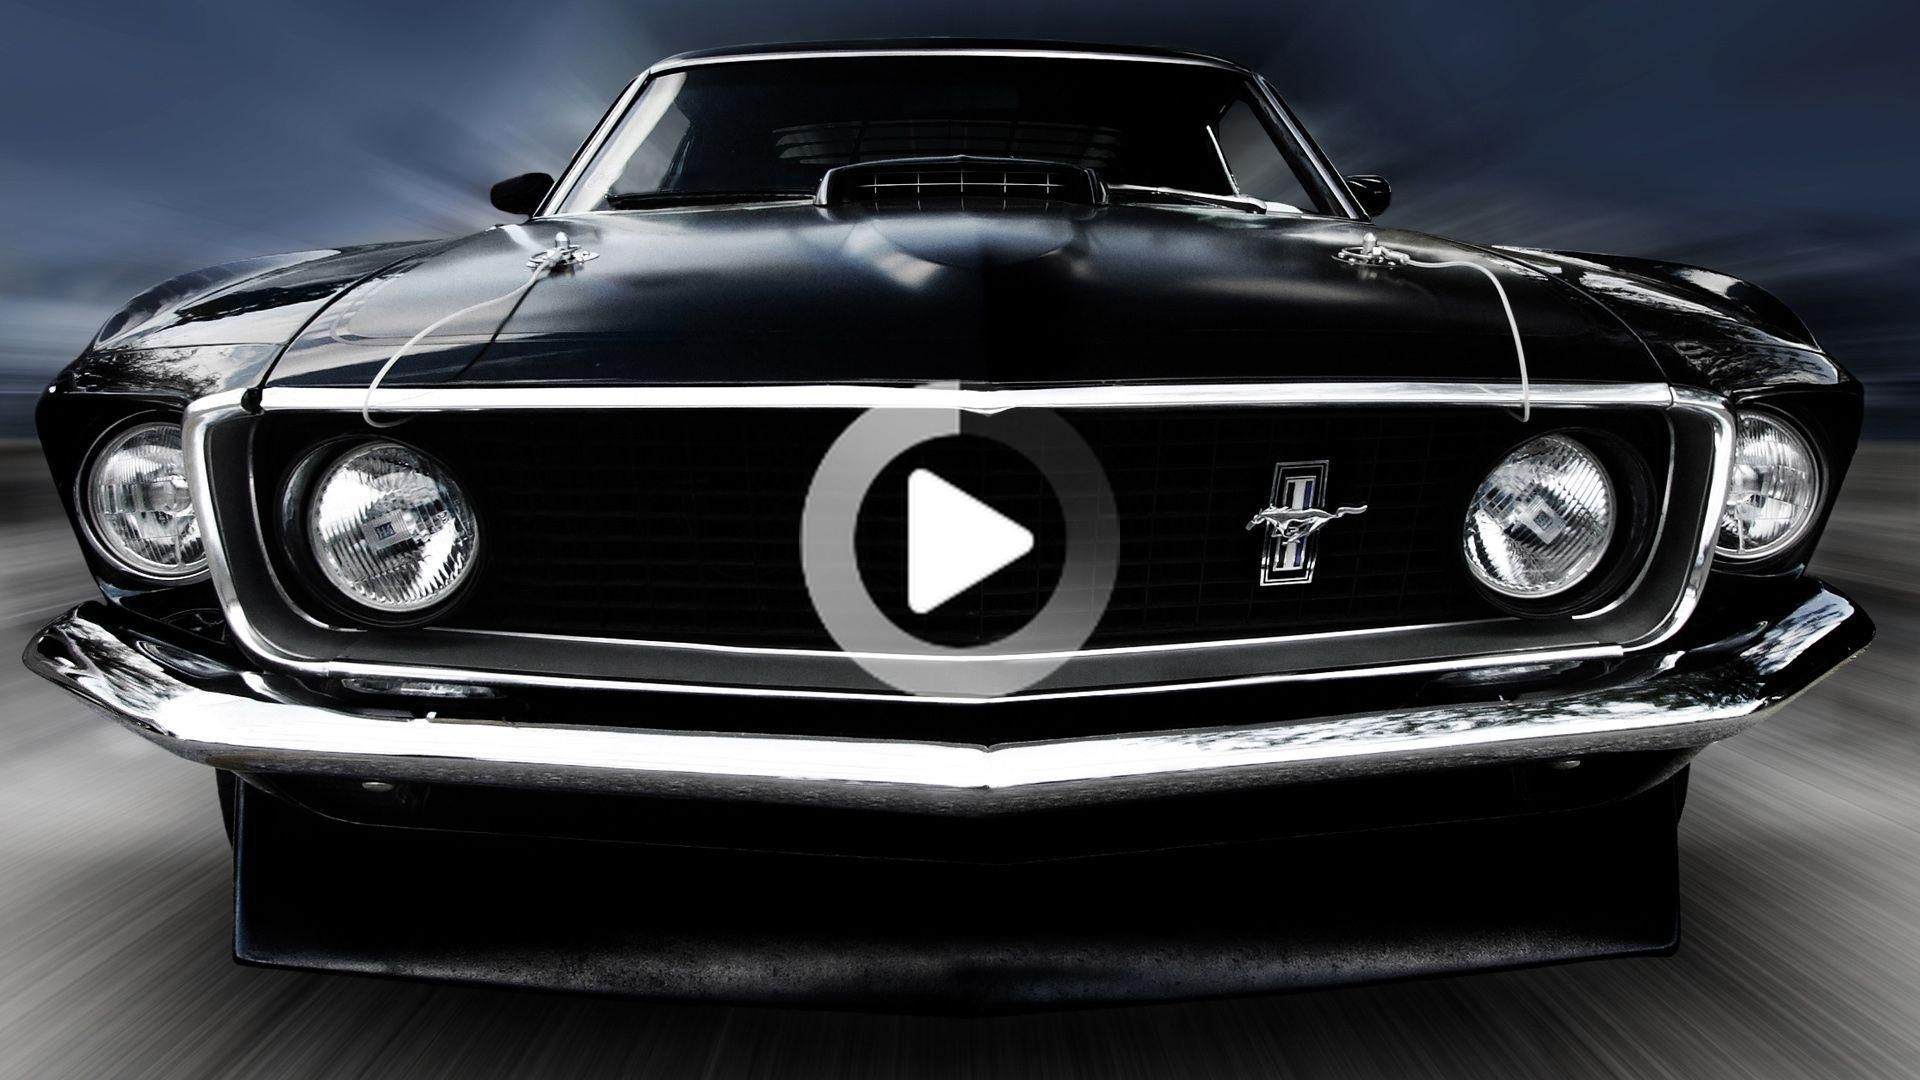 Best Of Wallpaper Full Hd Mobile Smartphone Ford Mustang Car Photos